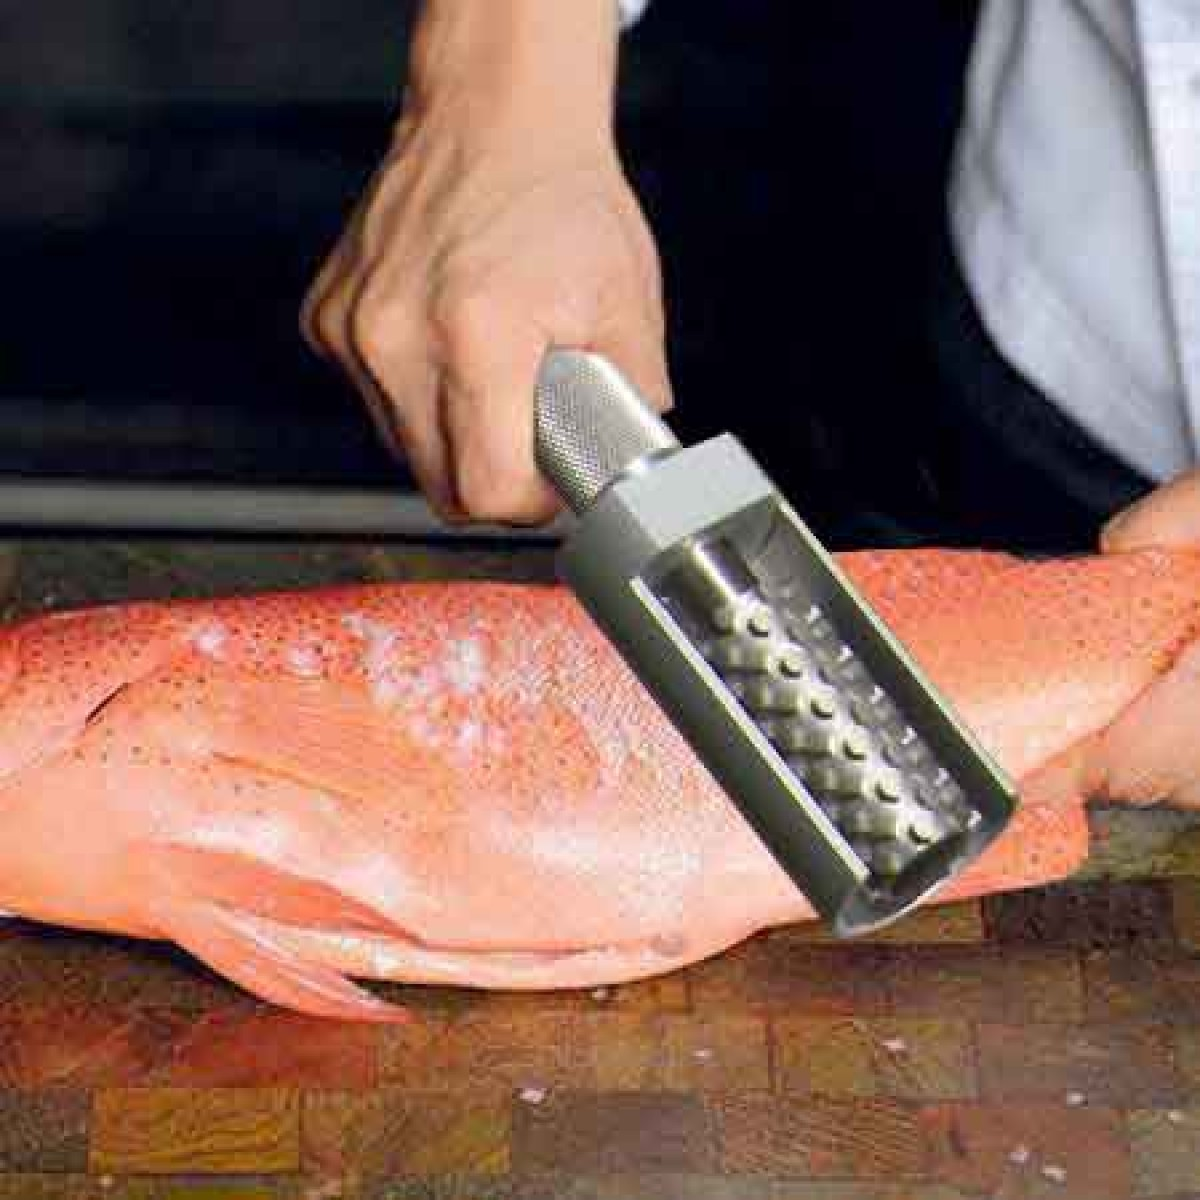 fish scaler Removes fish scales quick and easy with this stainless steel fish scaler, simple  and effective.